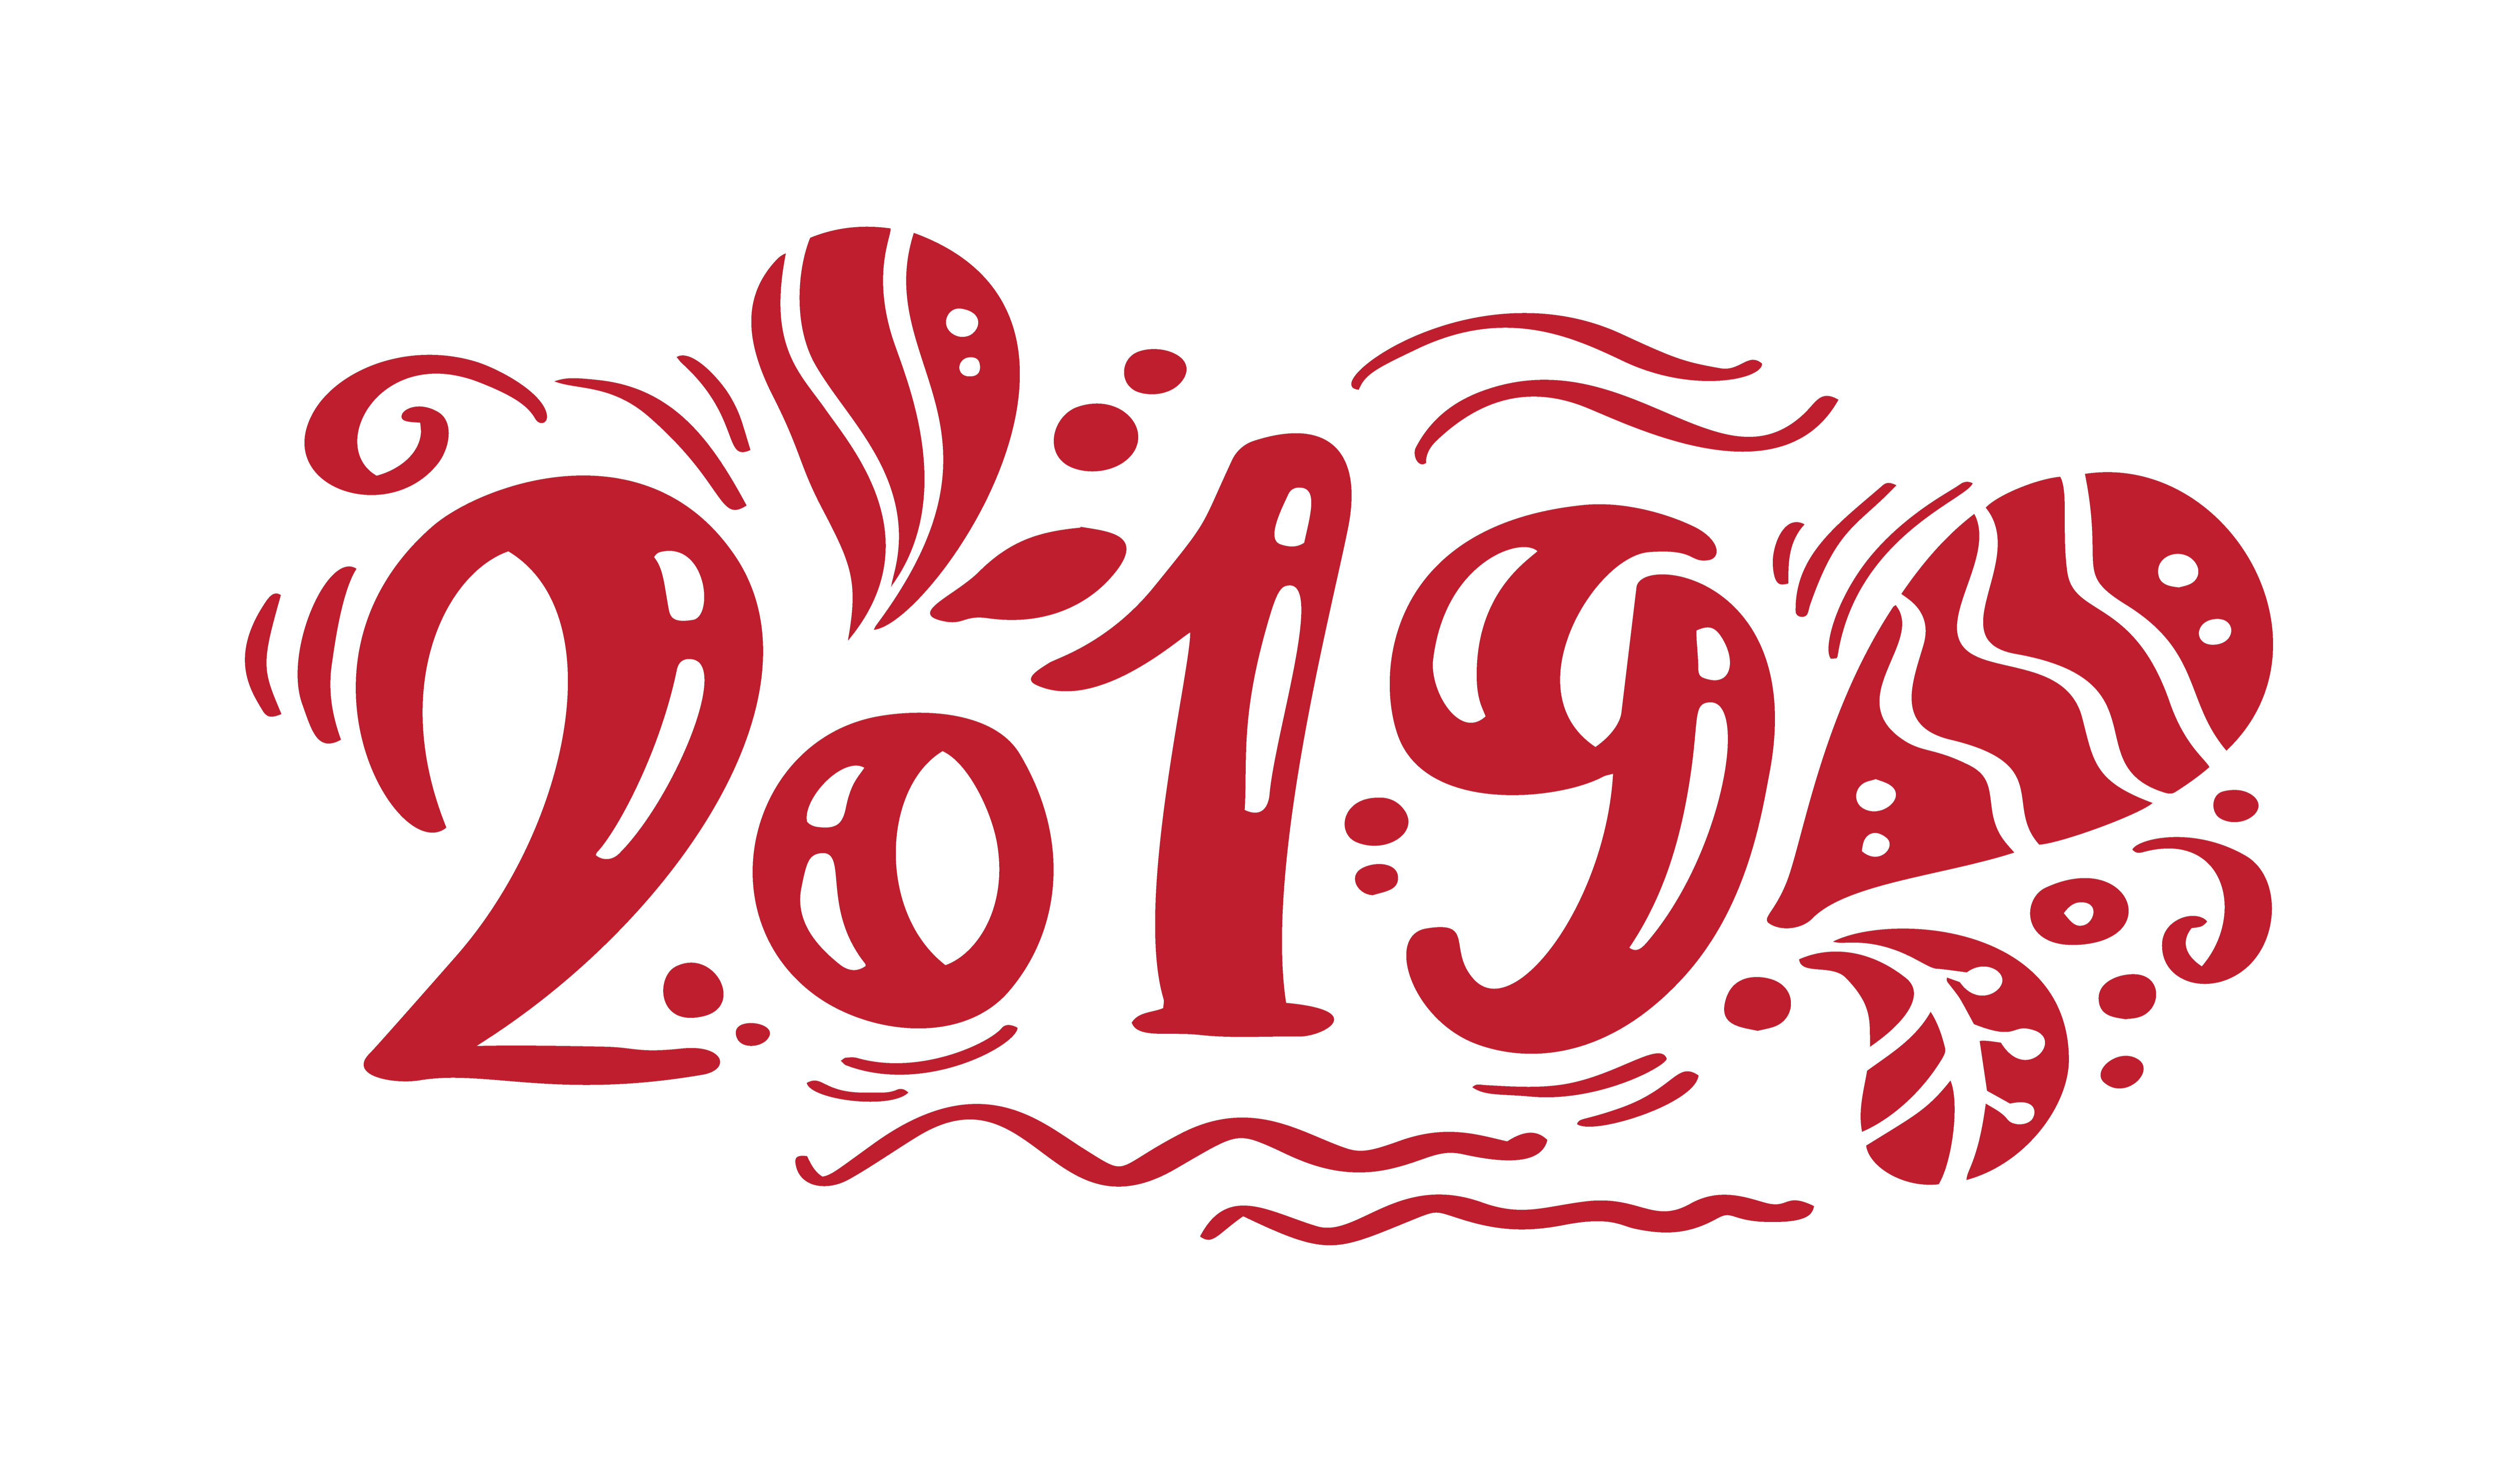 2019 red vintage calligraphy lettering vector christmas